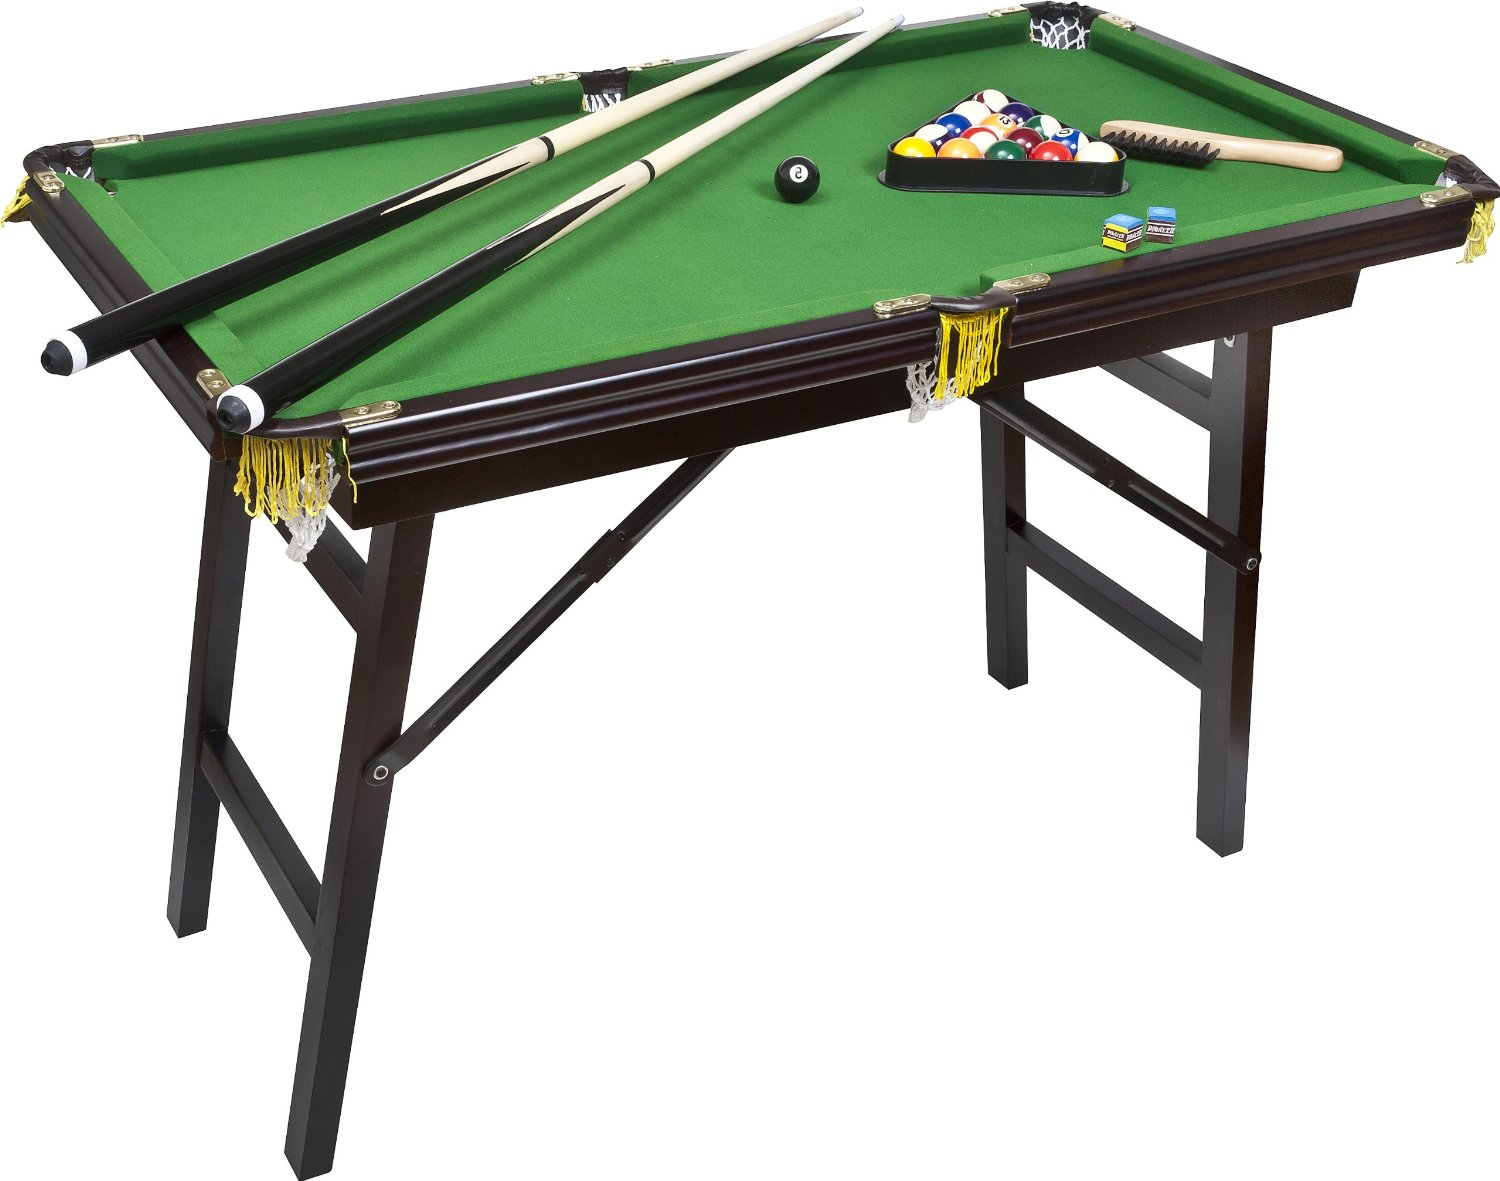 Merveilleux Bello Games Extra Large Folding Table